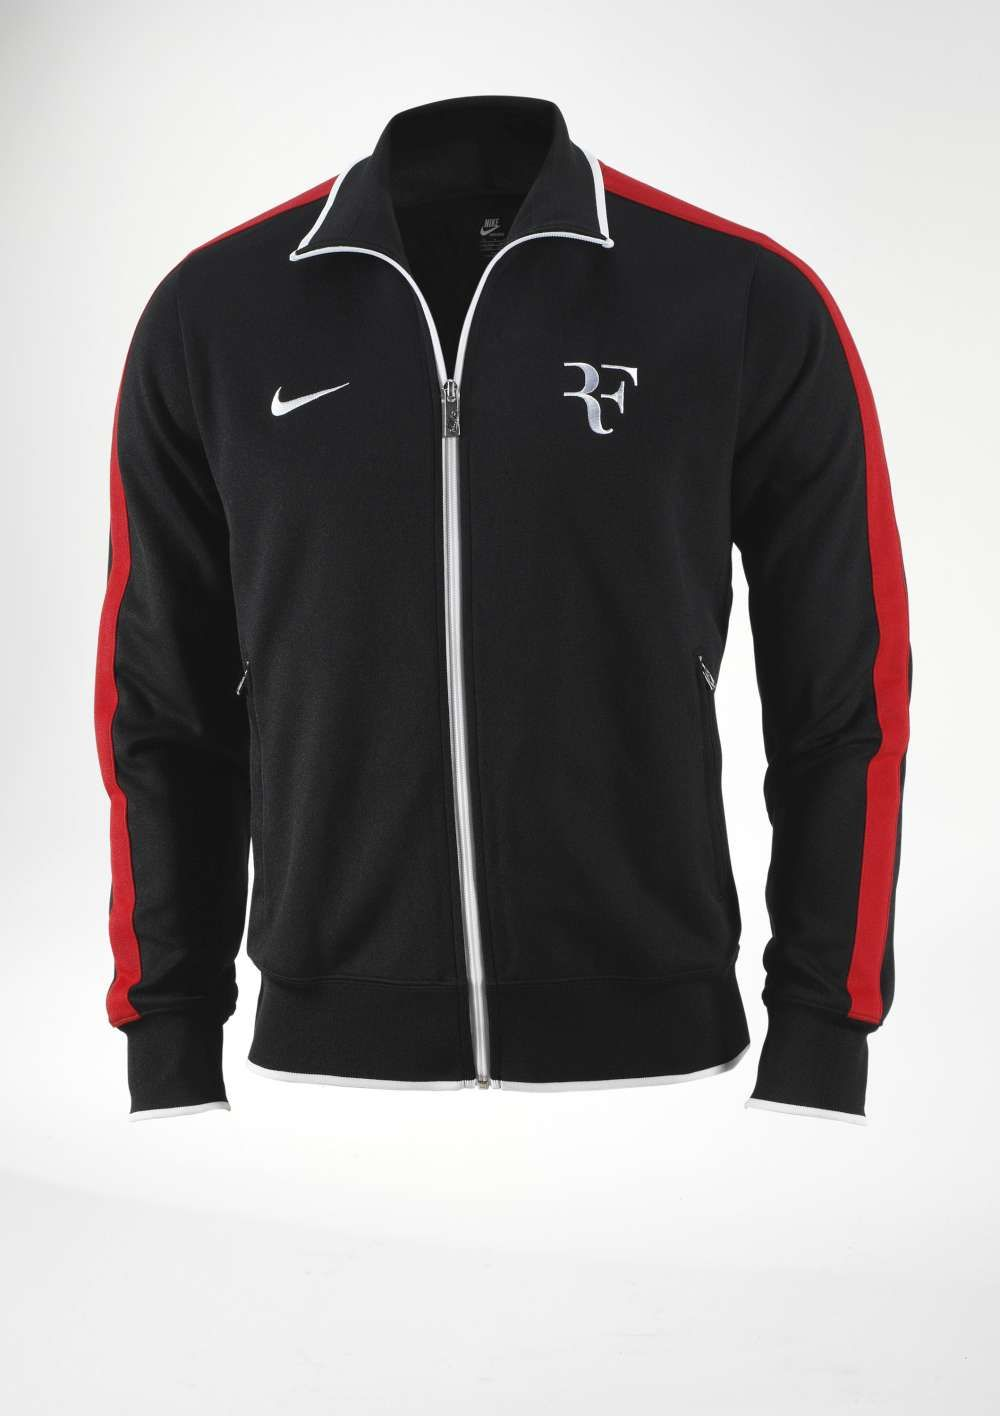 28ce009d Nike Roger Federer tennis Jacket...sick | Style / Fashion / Gear ...